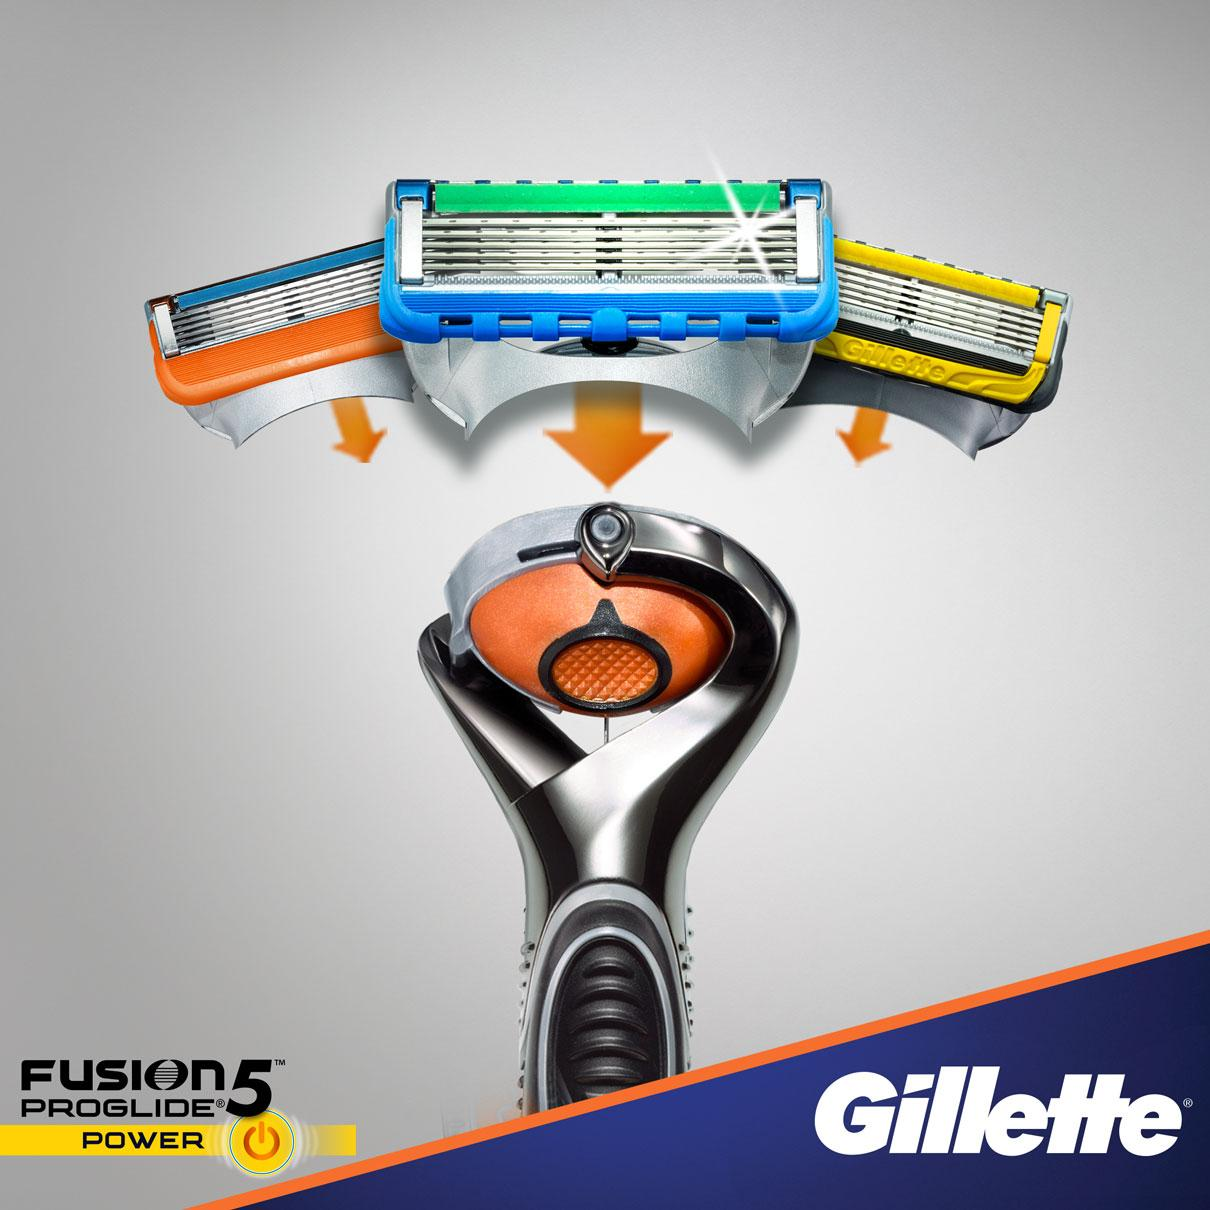 Fusion5 Proglide Power Razor With Flexball